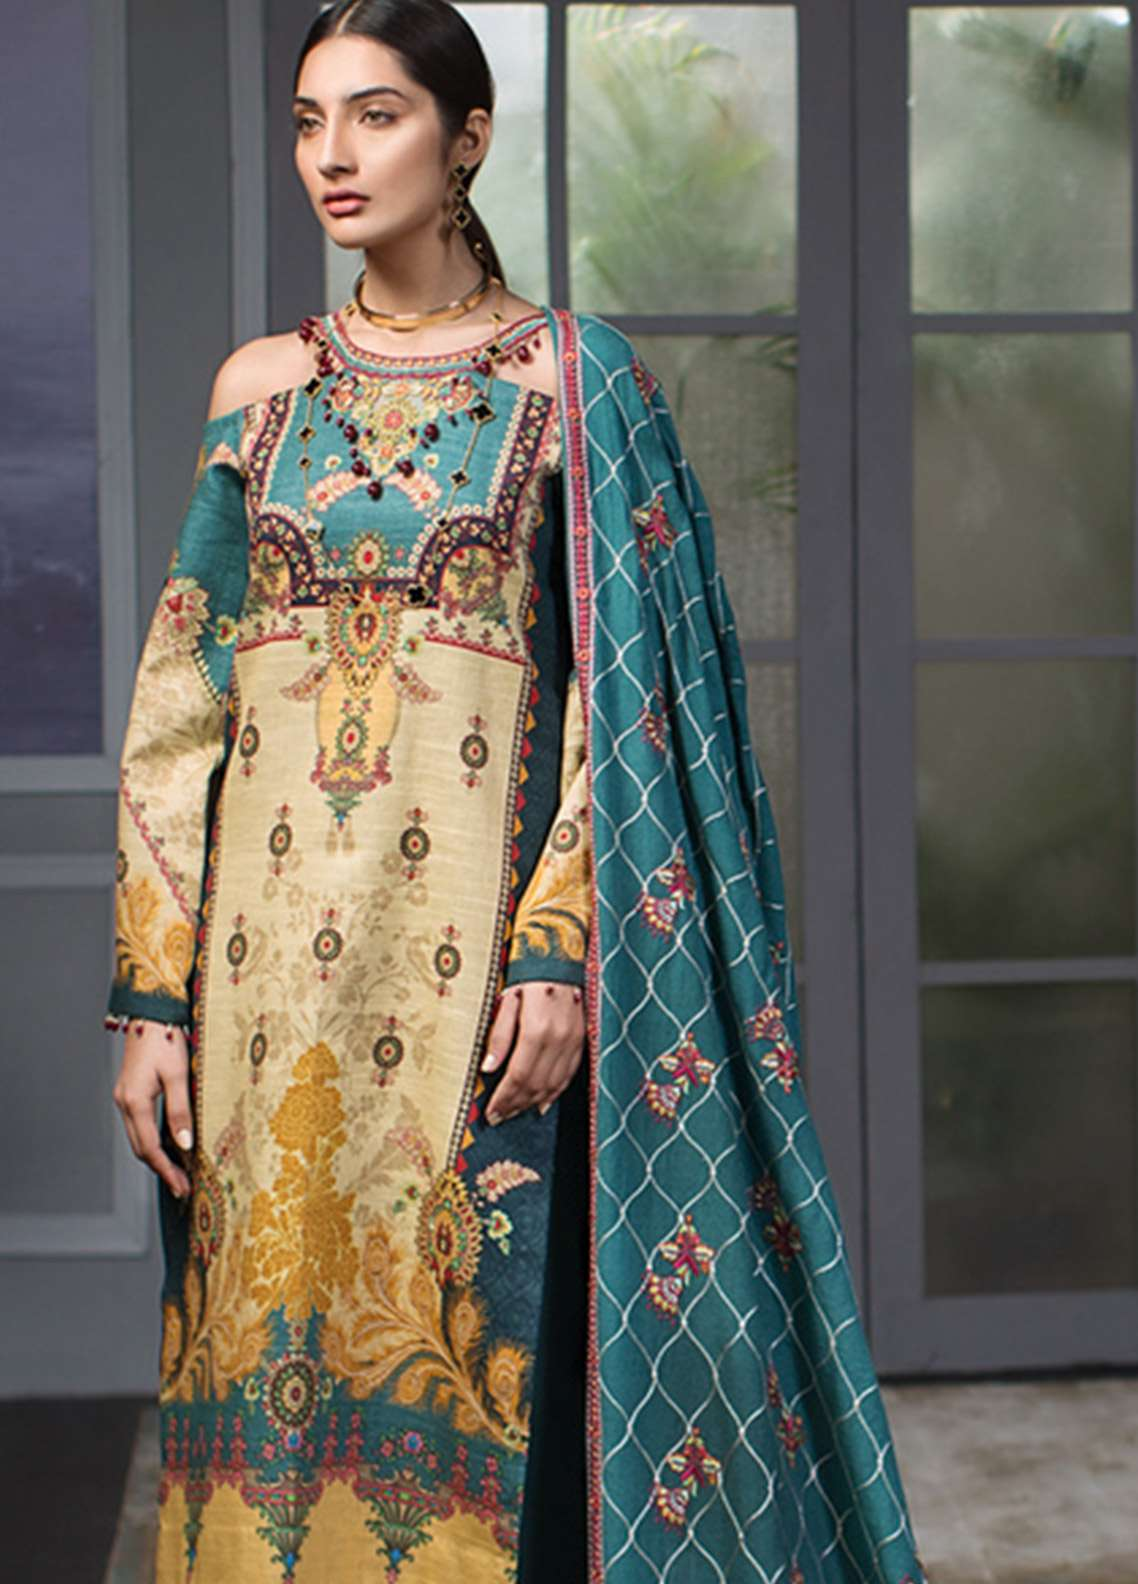 Noor By Saadia Asad Embroidered Khaddar Unstitched 3 Piece Suit NO18W 2 Chanson - Winter Shawl Collection